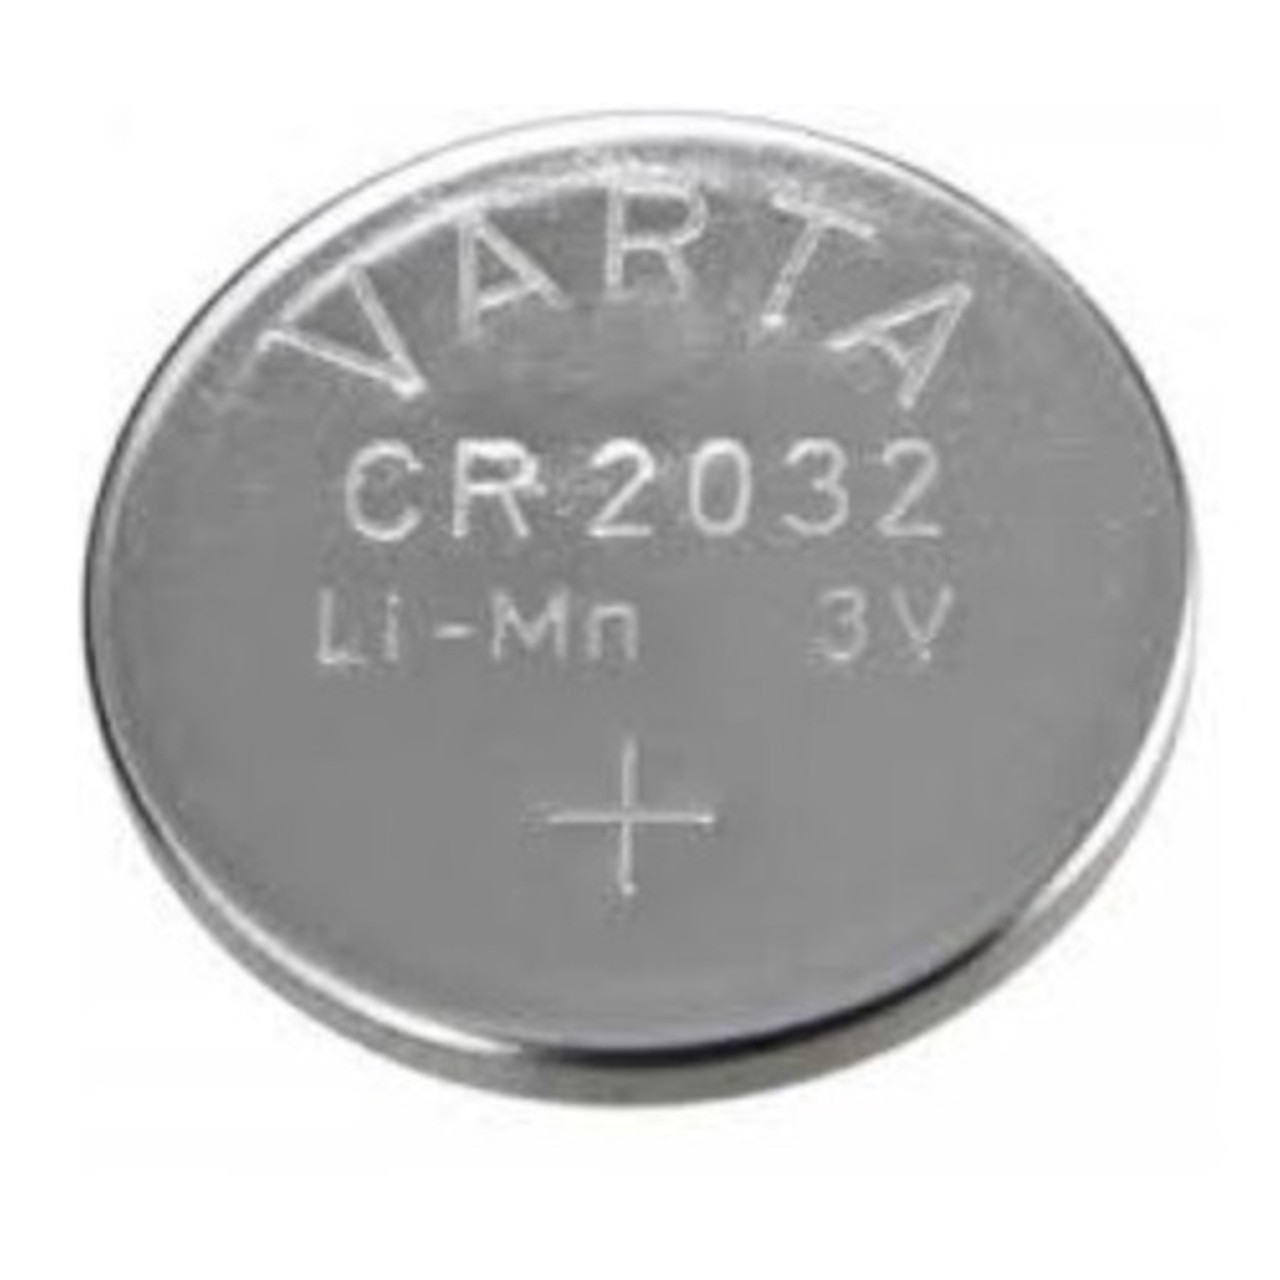 Varta CR2032, 3 Volt, 230 mAh Lithium Coin Cell